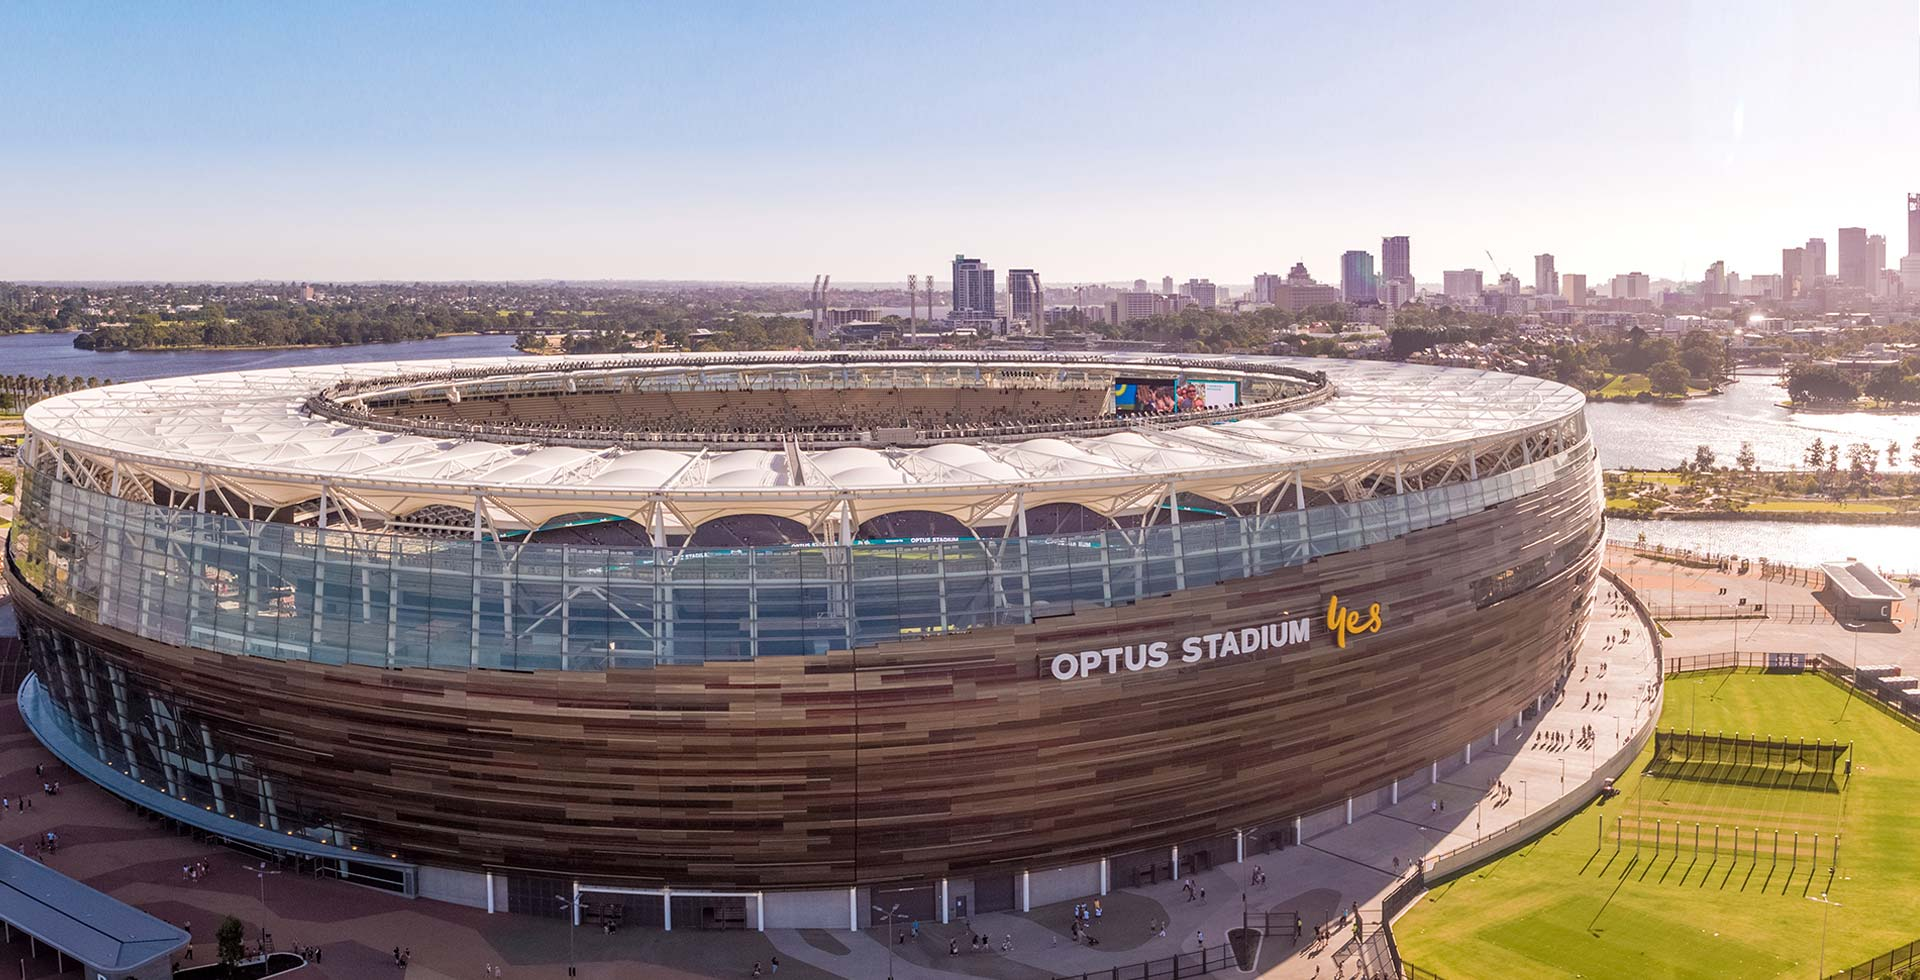 Experience an exclusive behind the scenes tour of Optus Stadium